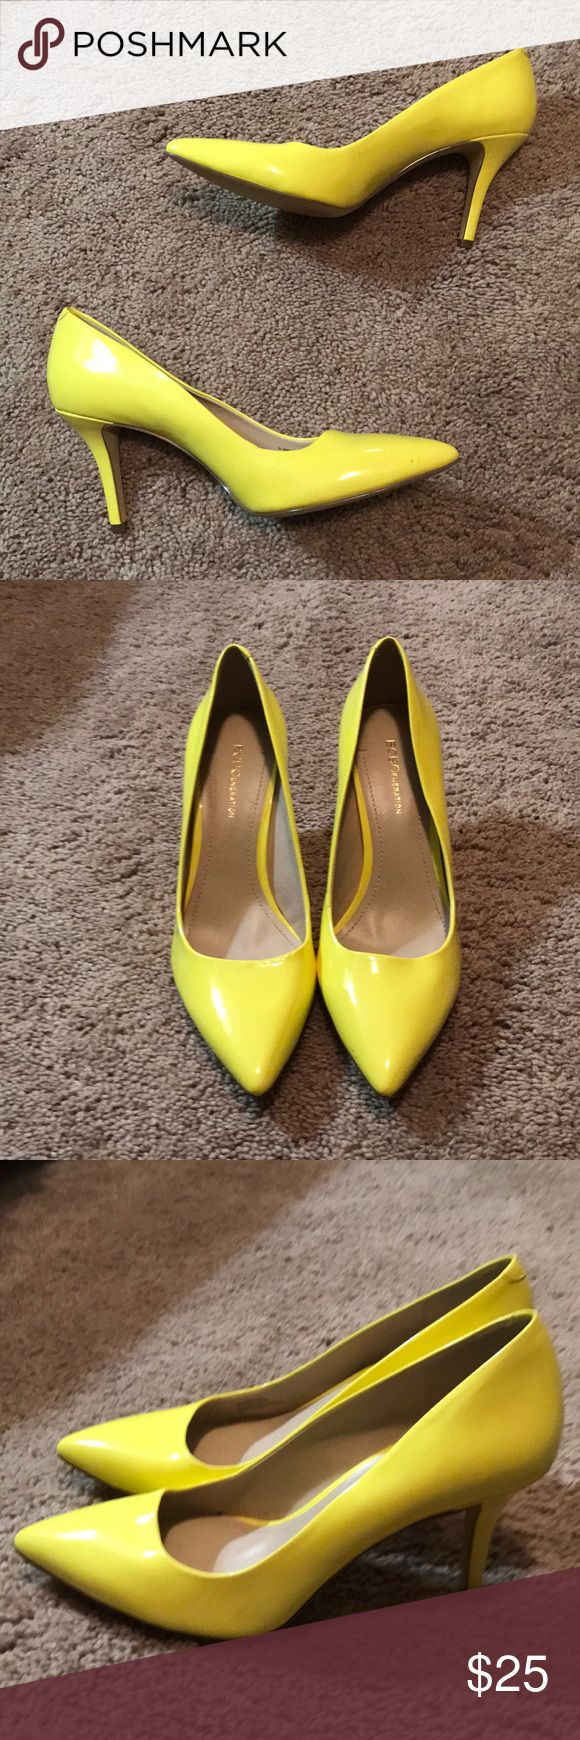 BCBG Gen Yellow pumps Adorable and funky yellow pumps. Great condition and worn maybe once ever indies. A few marks shown in pictures on toe and side. BCBGeneration Shoes Heels